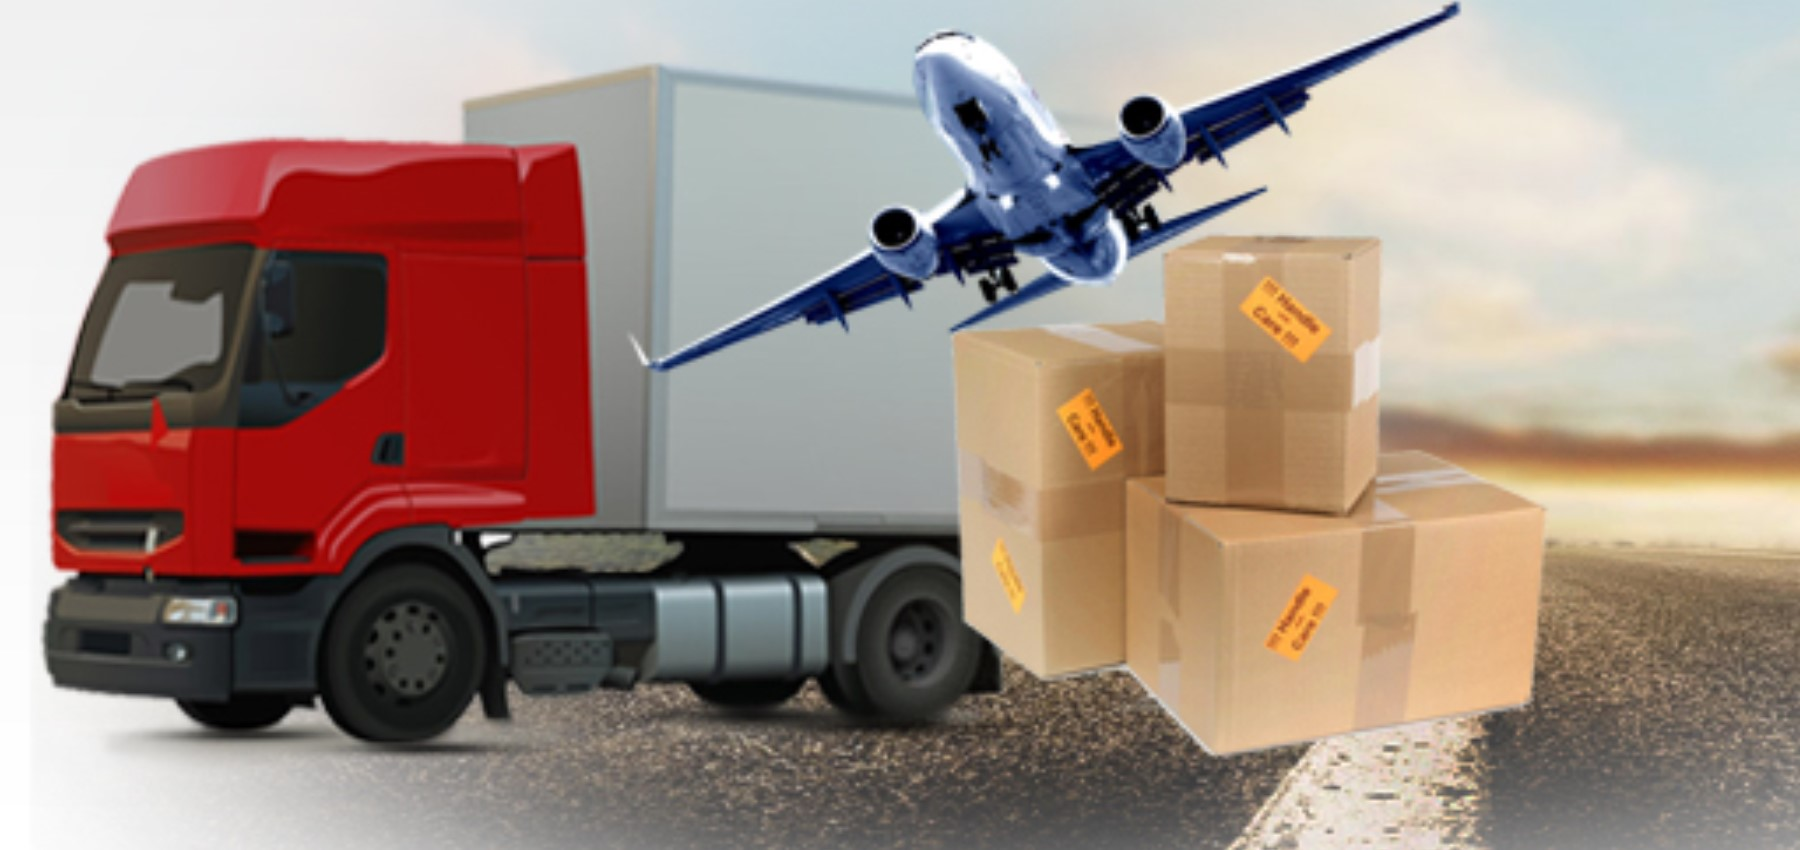 Grasping How Of International Express Shipment Carrier Solutions Ltd Monitoring Isn't A Mishap